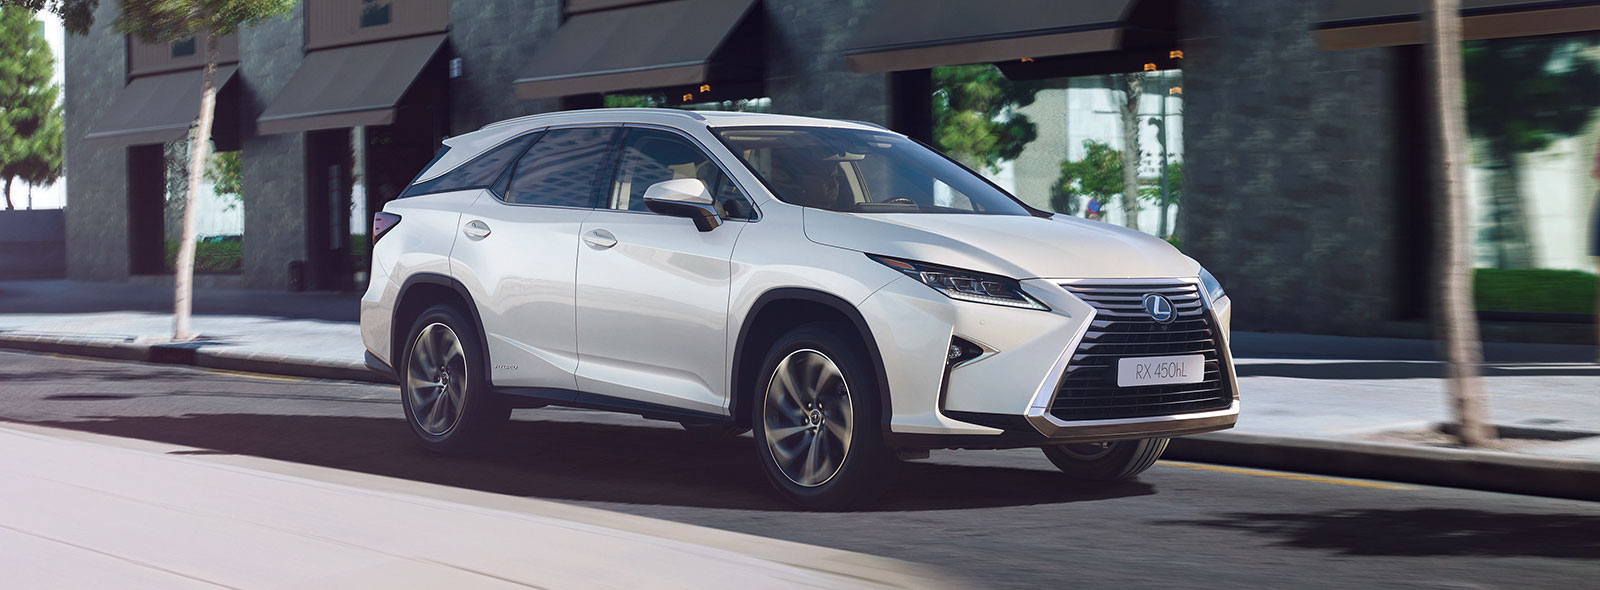 2018 lexus rx long wheelbase gallery 001